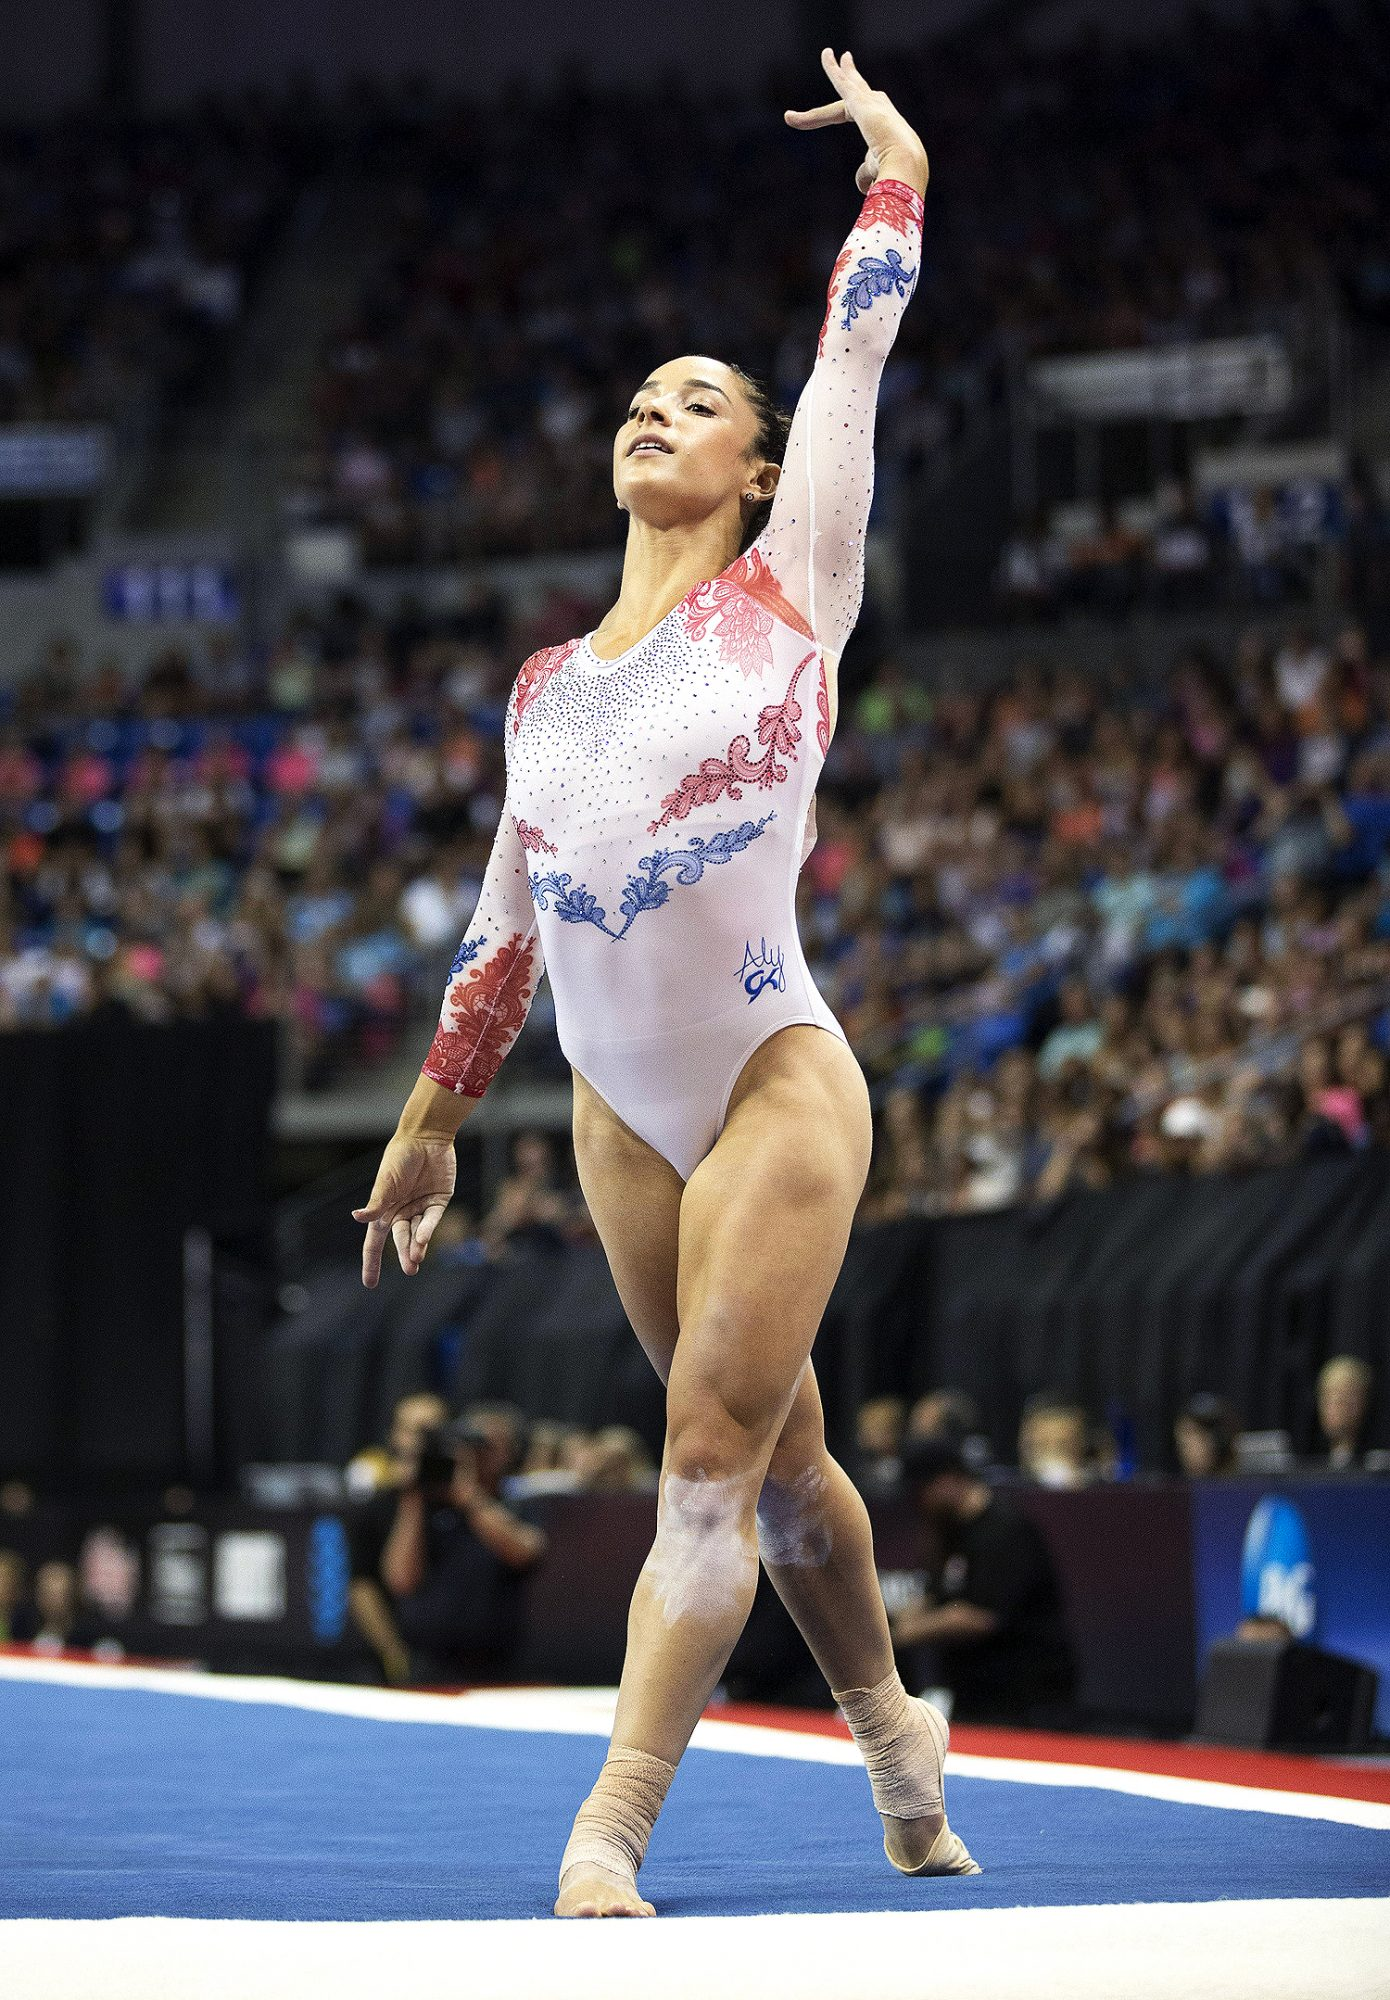 P&G Championships Women's Gymnastics, St. Louis, USA - 26 Jun 2016